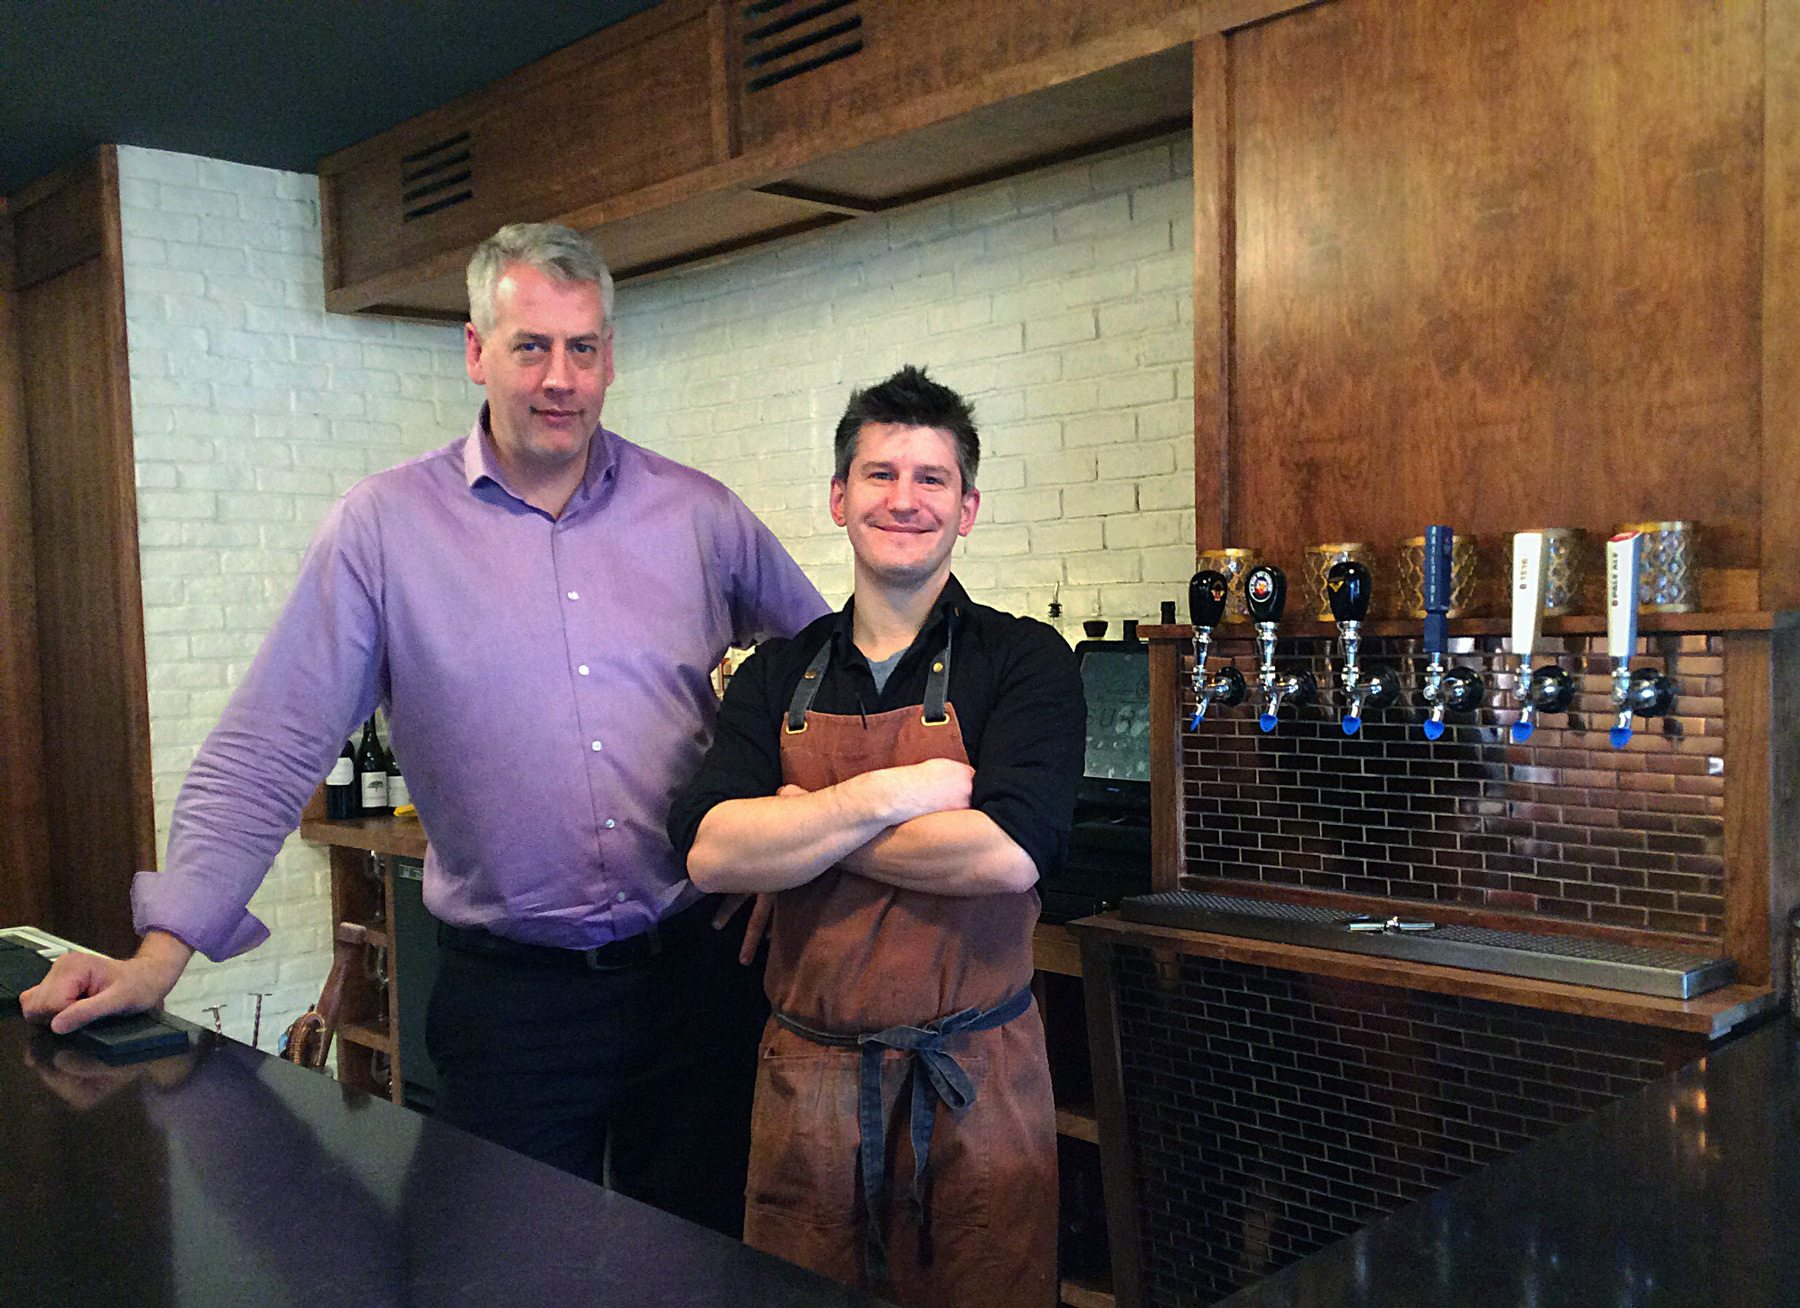 Sur-Lie owner Neil Gowe (left) and chef Nick Berolo at ease behind the L-shaped bar